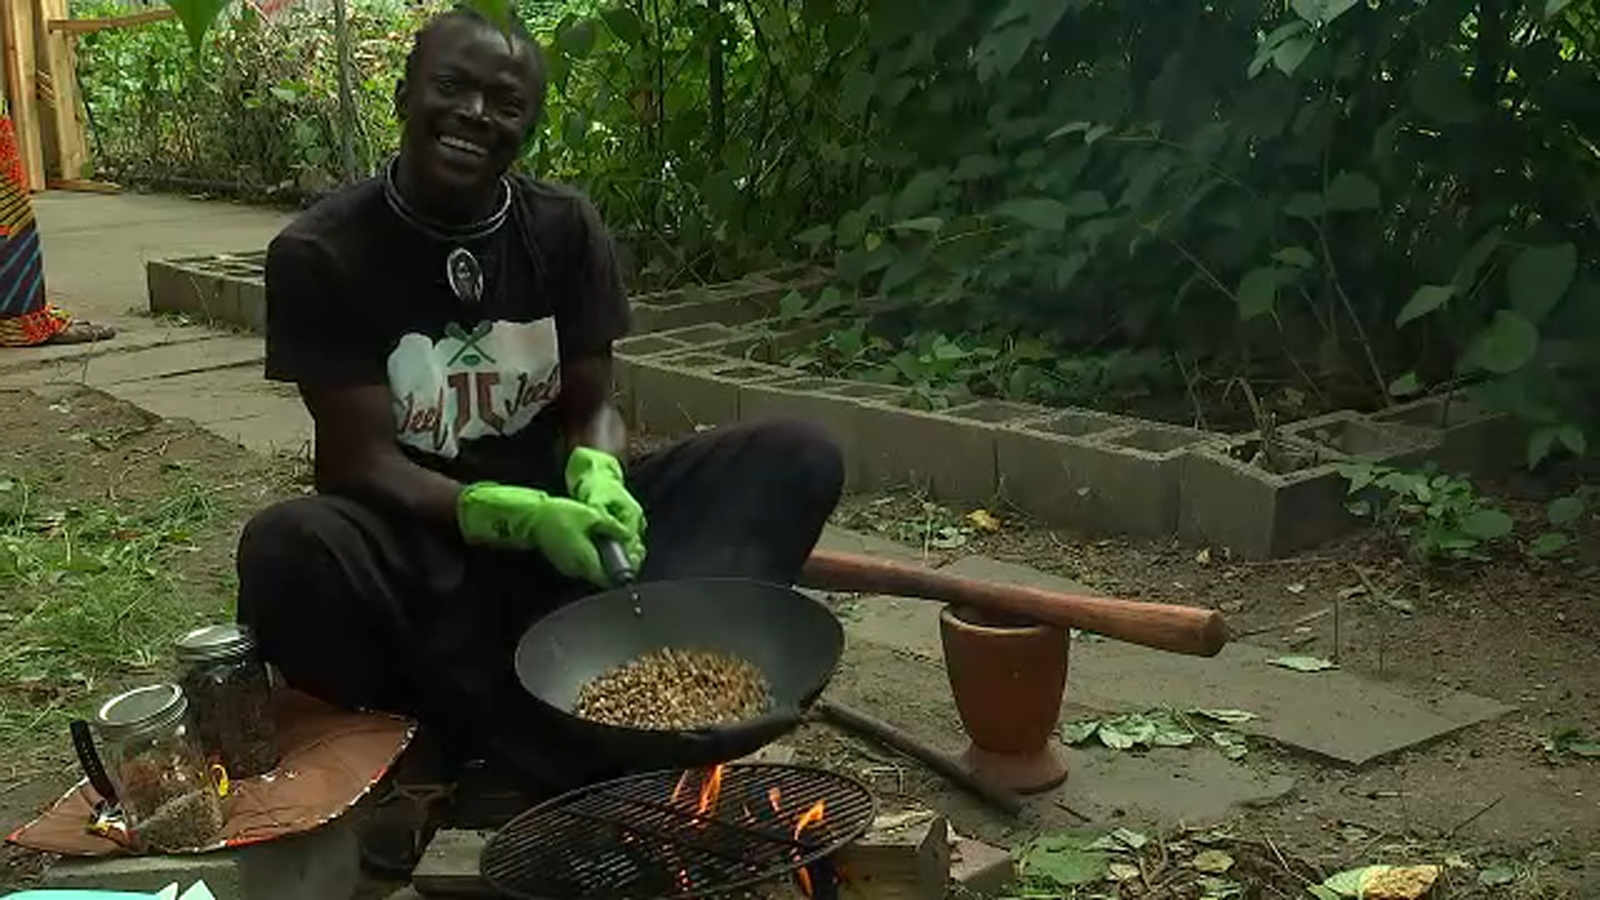 Brooklyn entrepreneur roasts coffee by hand for a cause